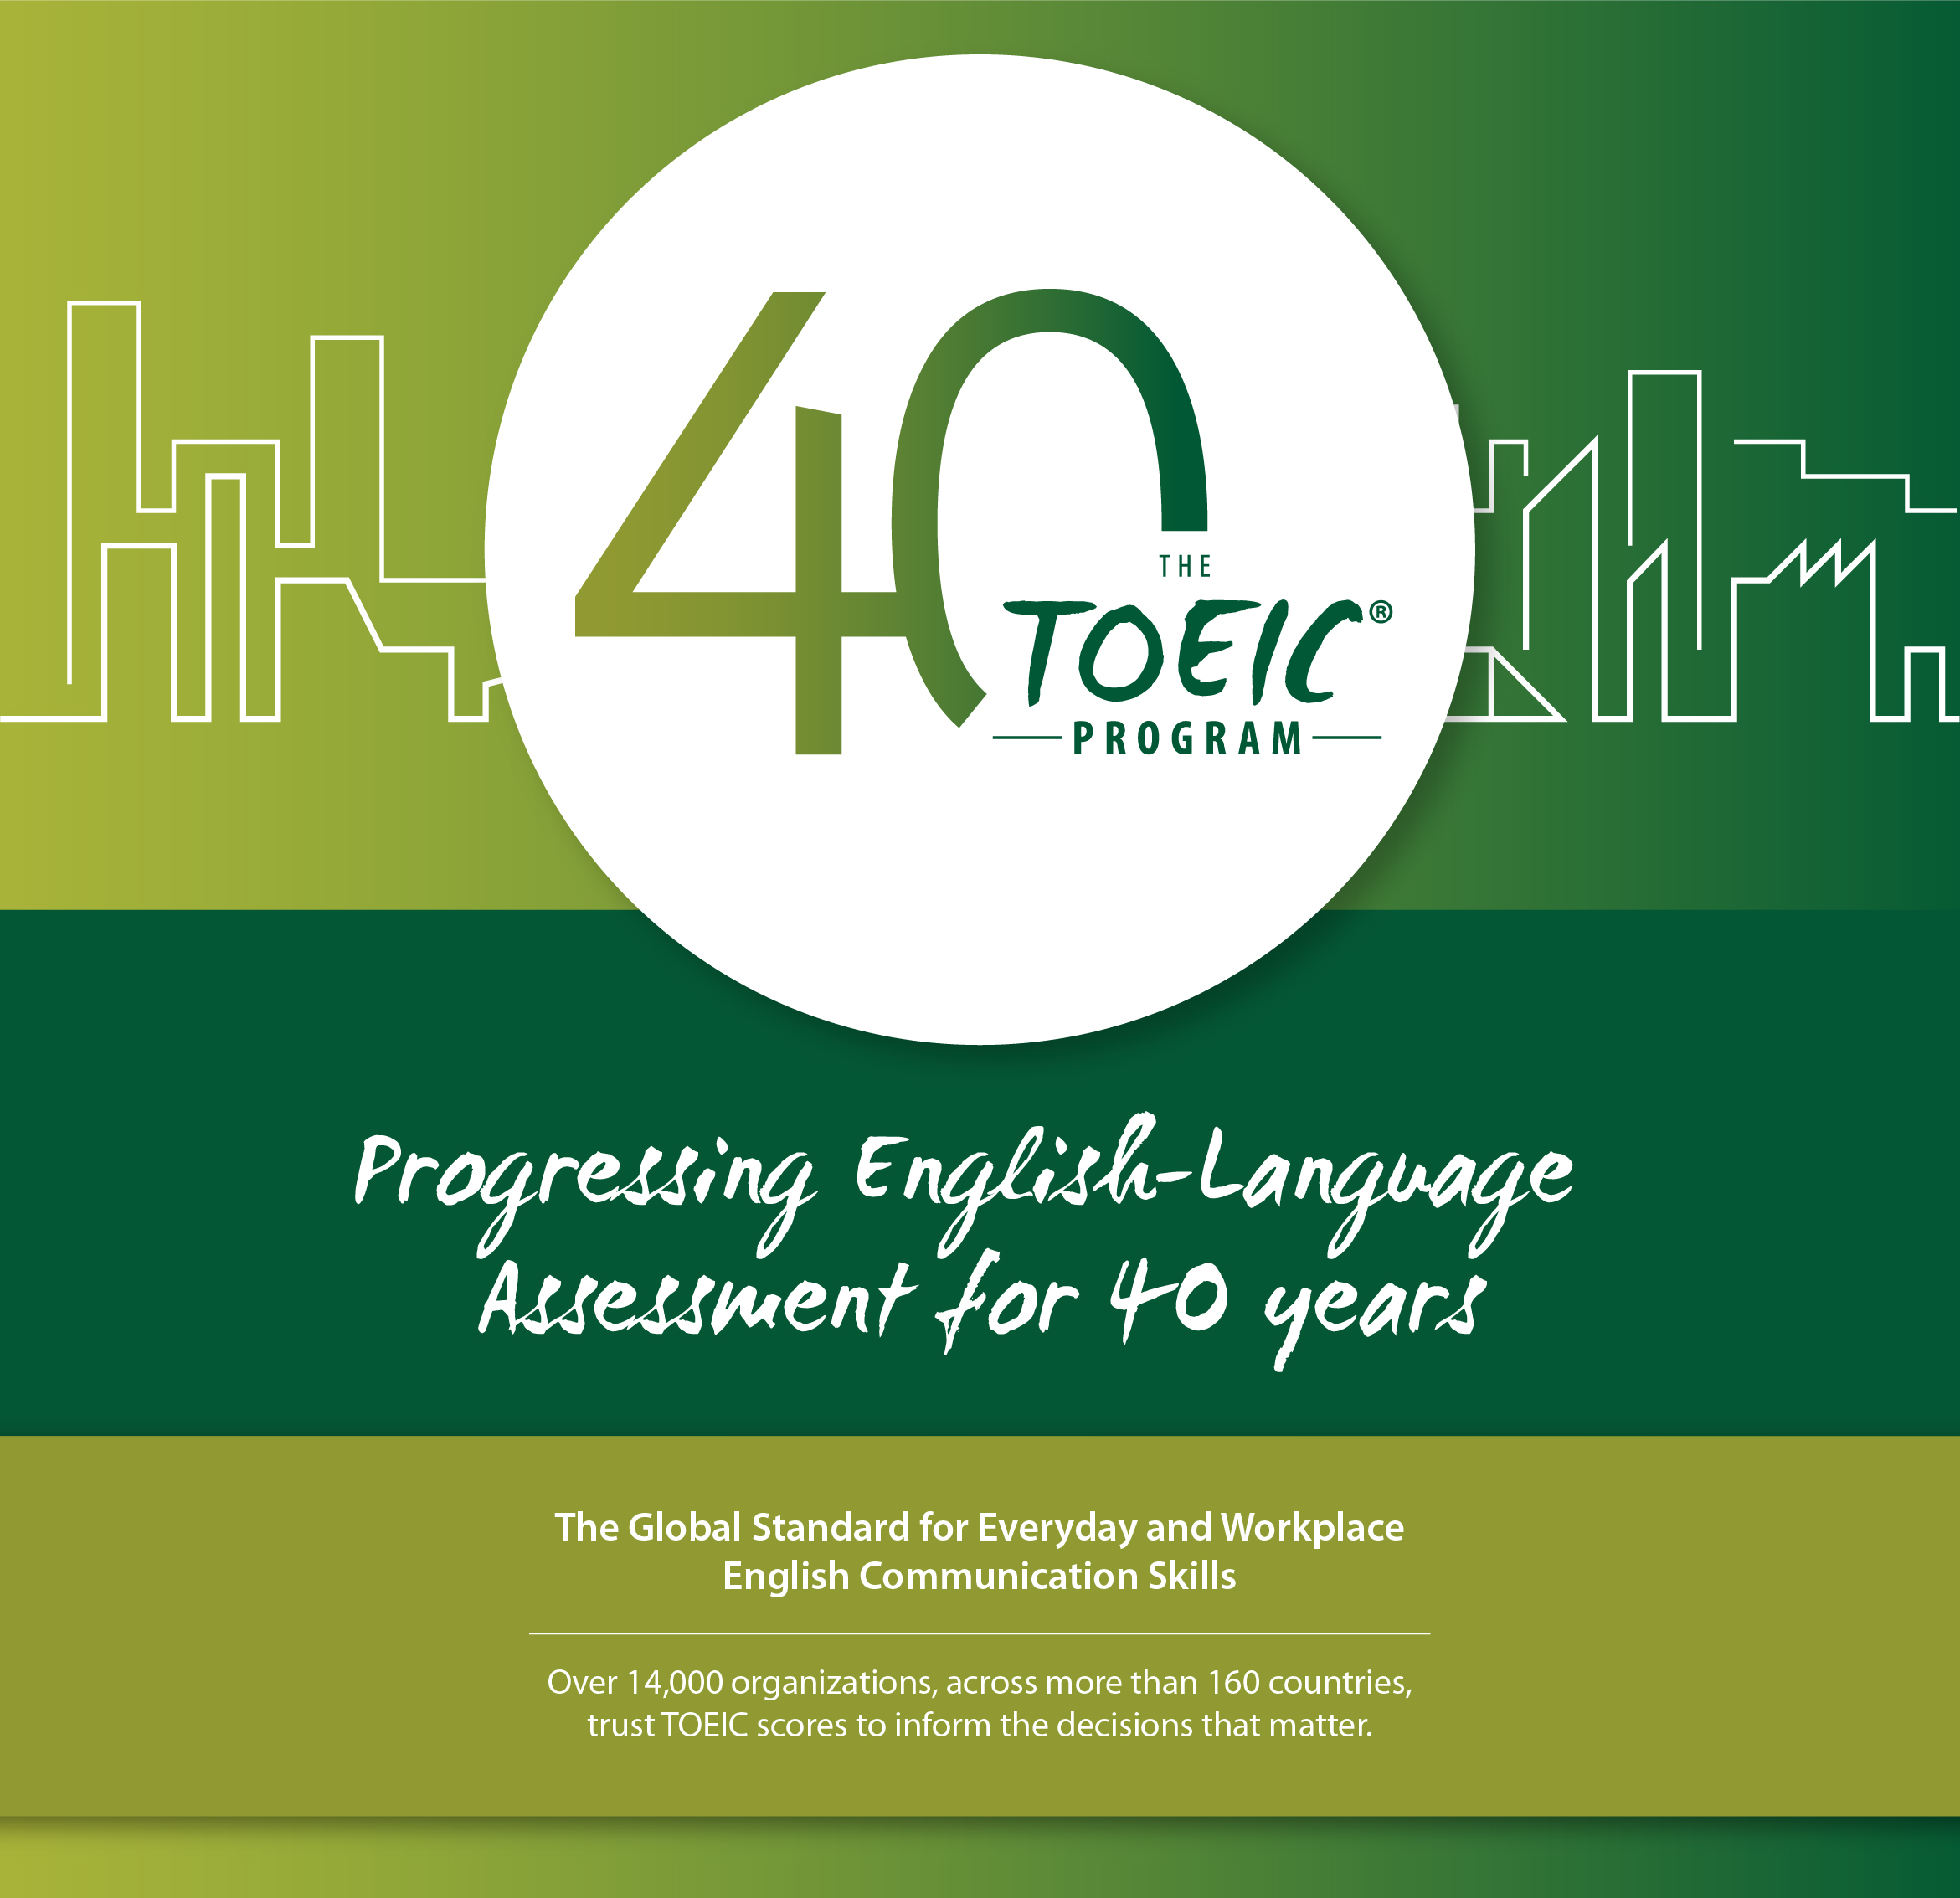 TOEIC Global – The leader for workplace English assessments